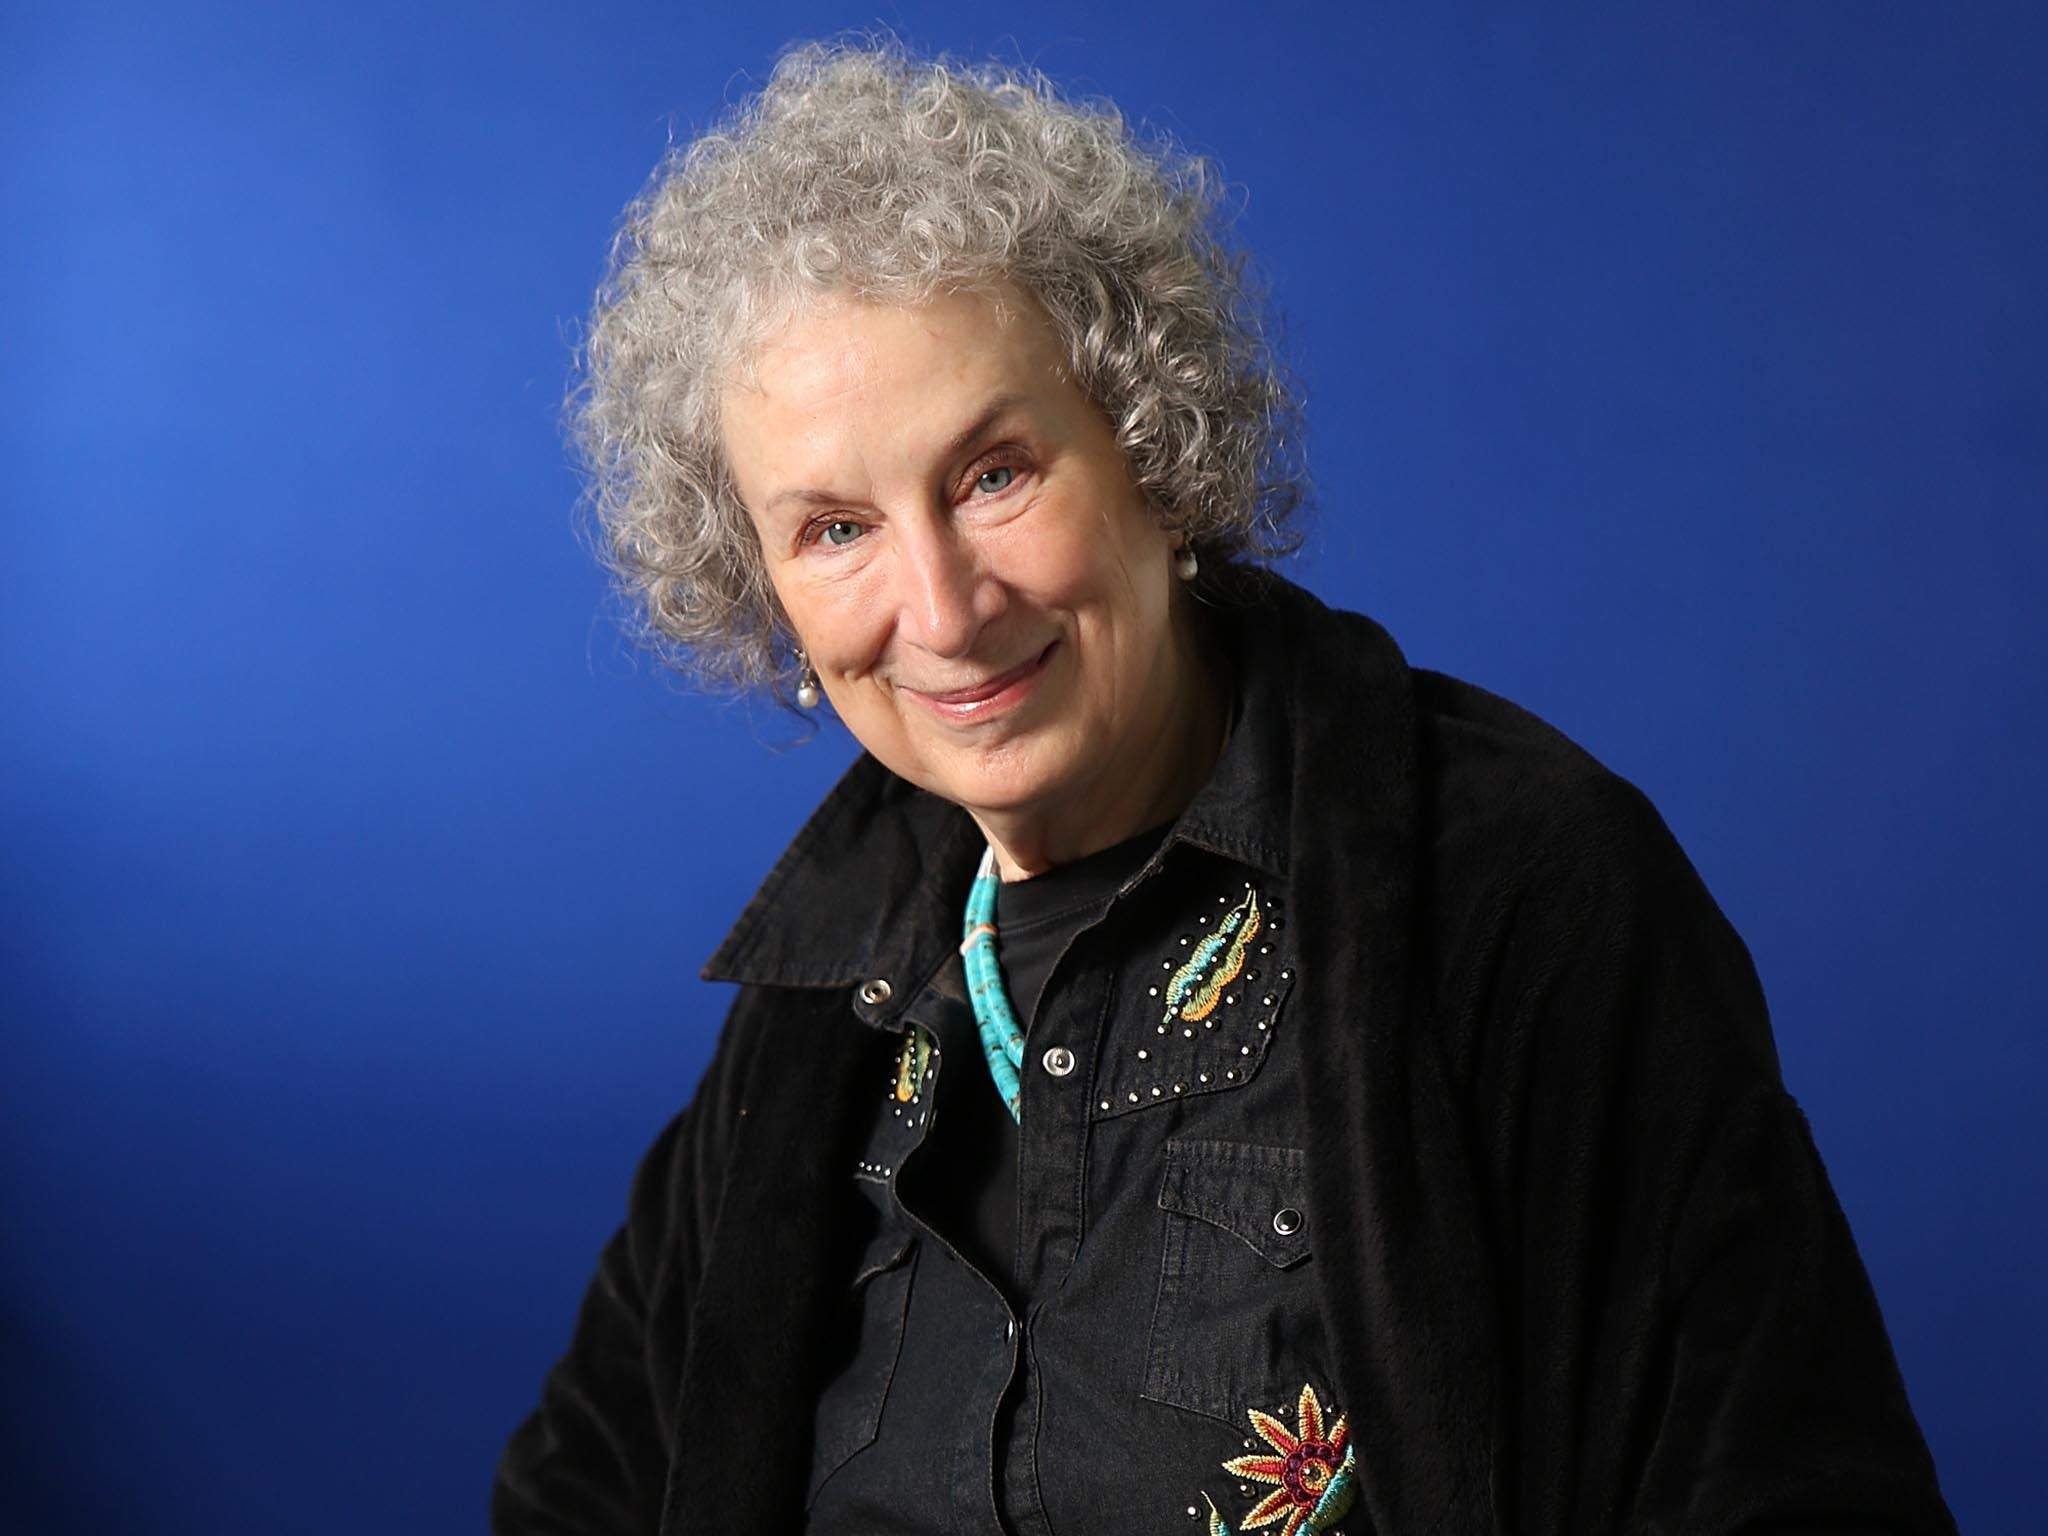 atwood sex personals Has the confronting story of the handmaid's tale become an 'instruction manual' for fundamentalist oppressors it's author, margaret atwood, fears so.